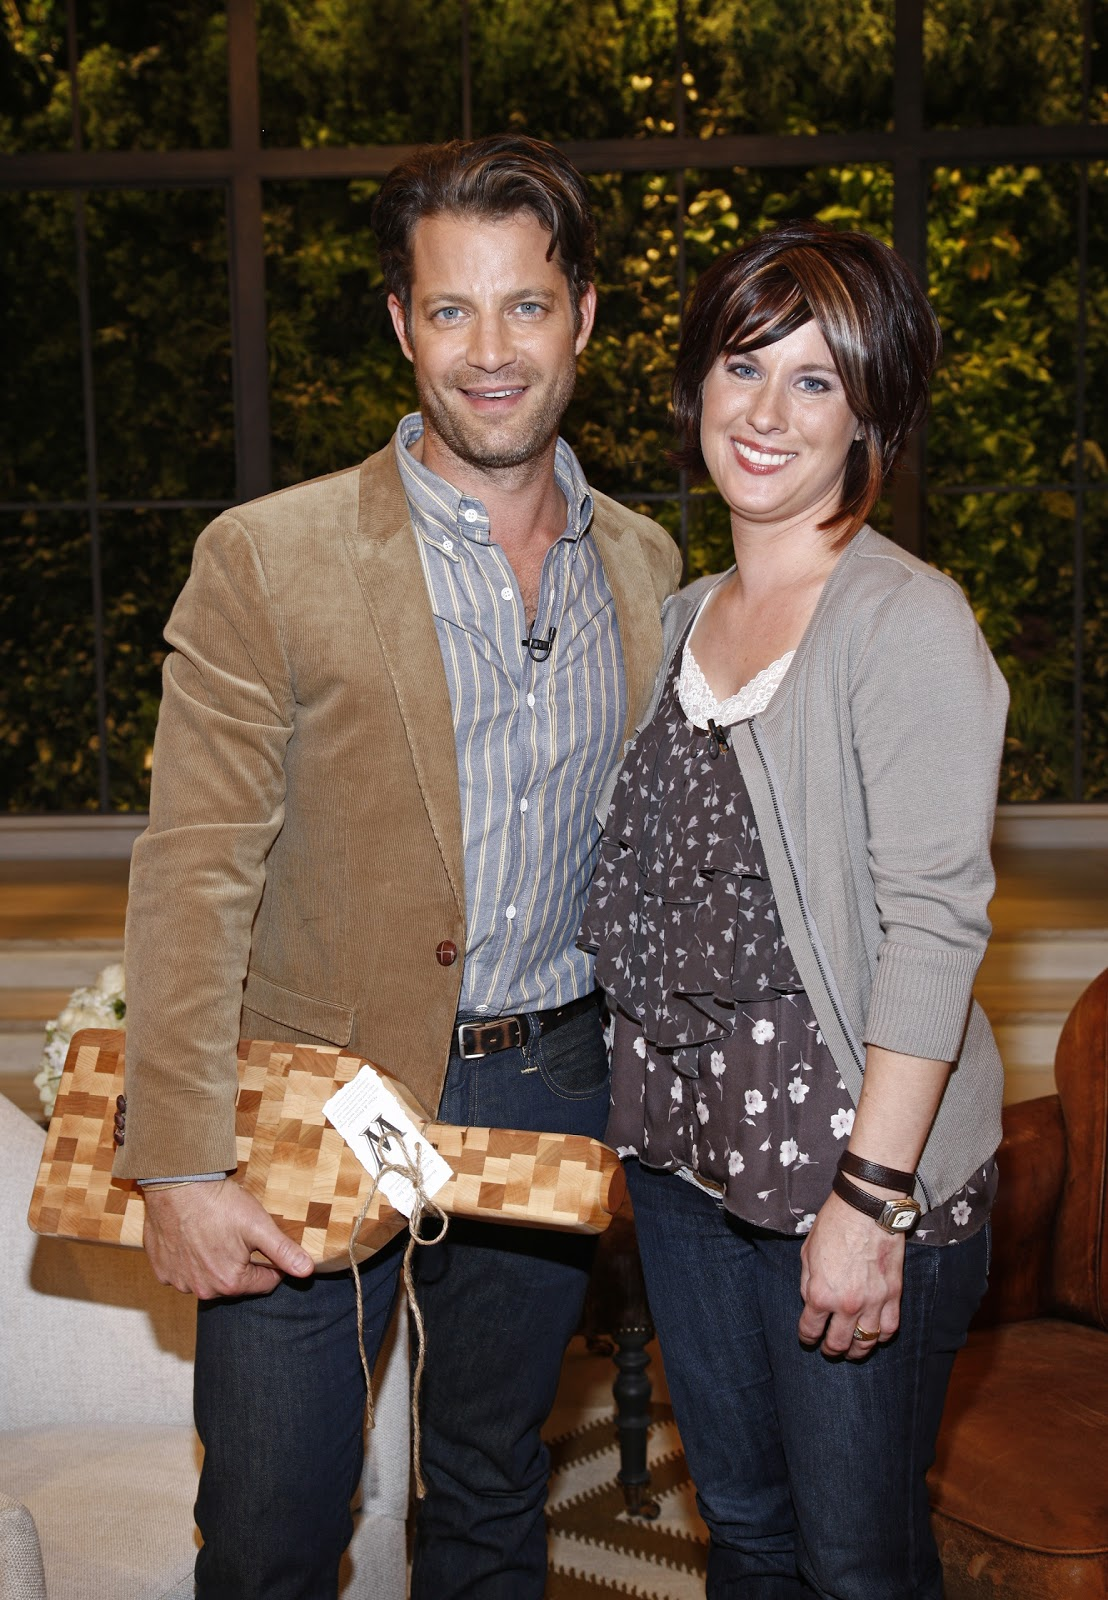 Who's coming with me to see NATE BERKUS????